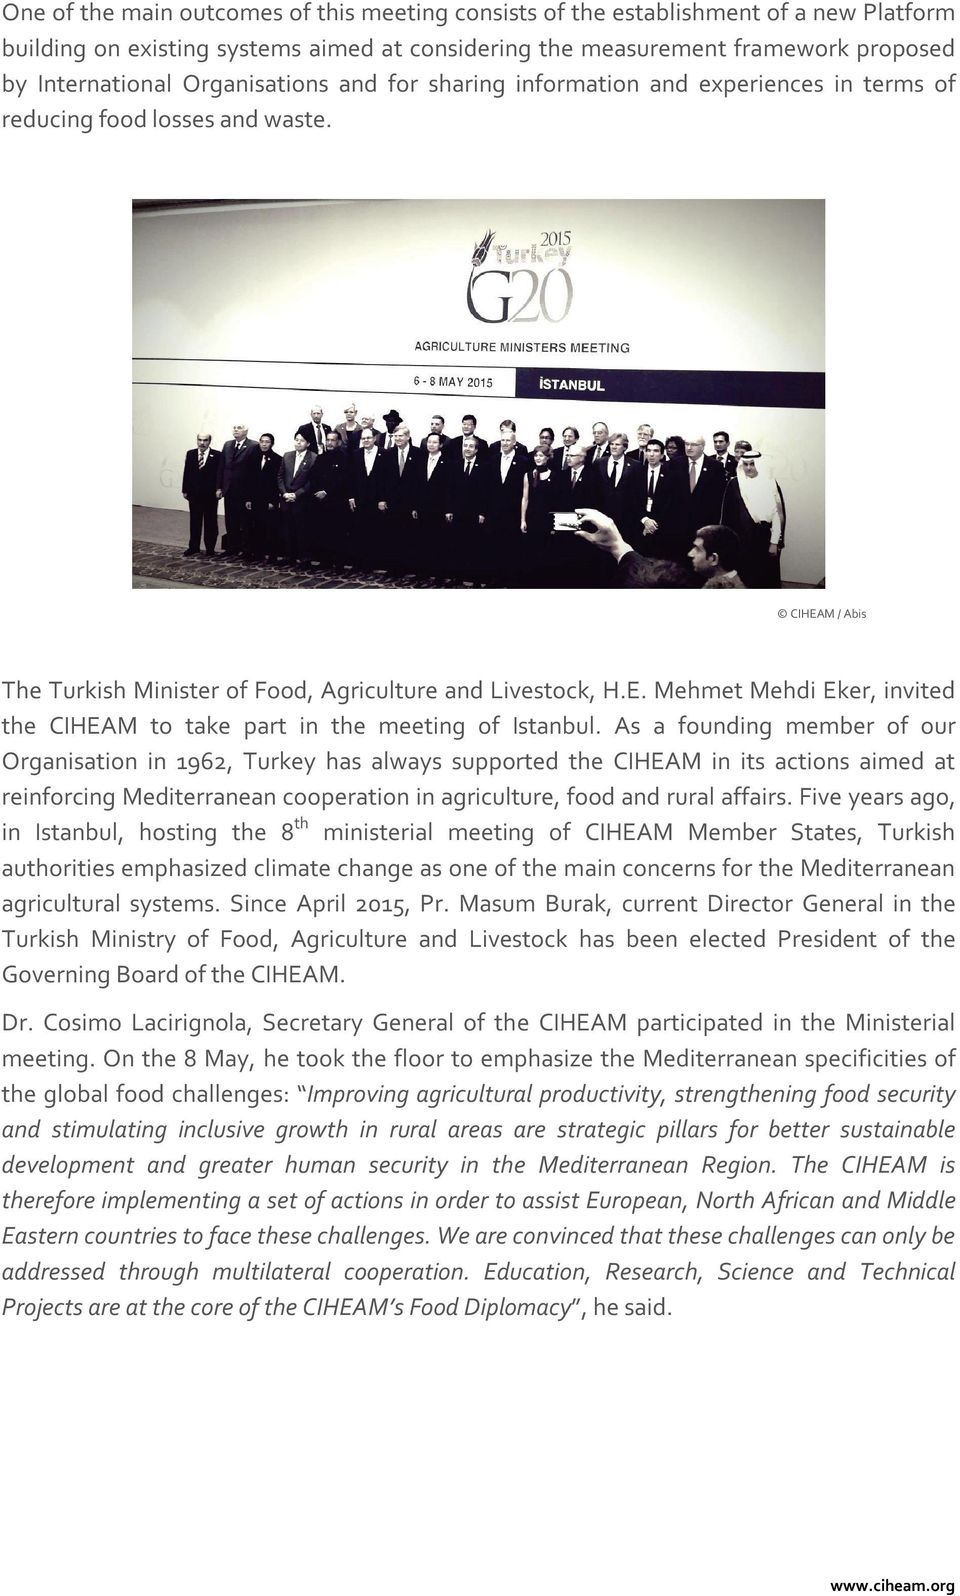 As a founding member of our Organisation in 1962, Turkey has always supported the CIHEAM in its actions aimed at reinforcing Mediterranean cooperation in agriculture, food and rural affairs.